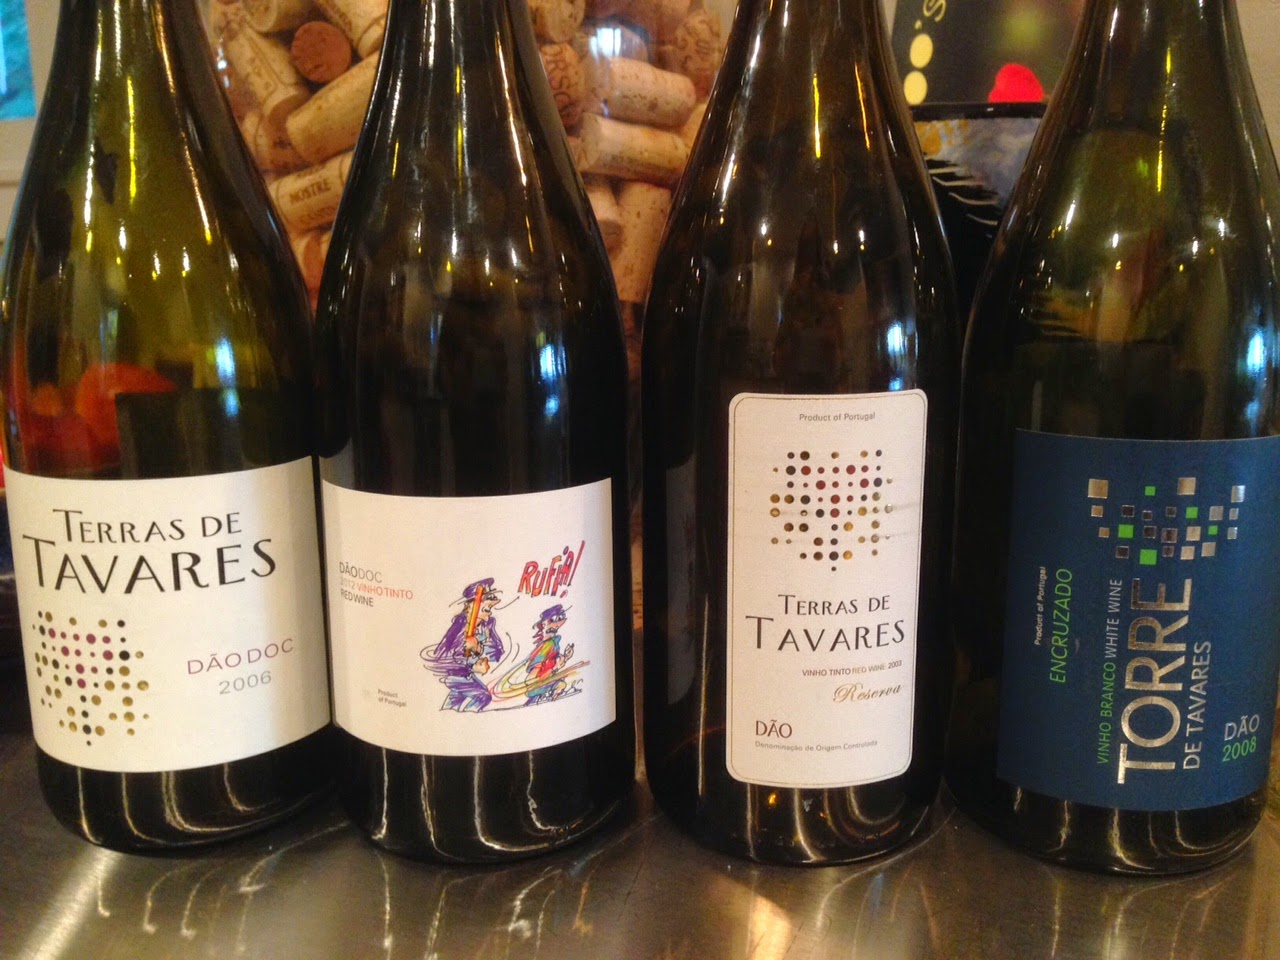 Come for the Wine: Blissed Out on Portuguese Wine